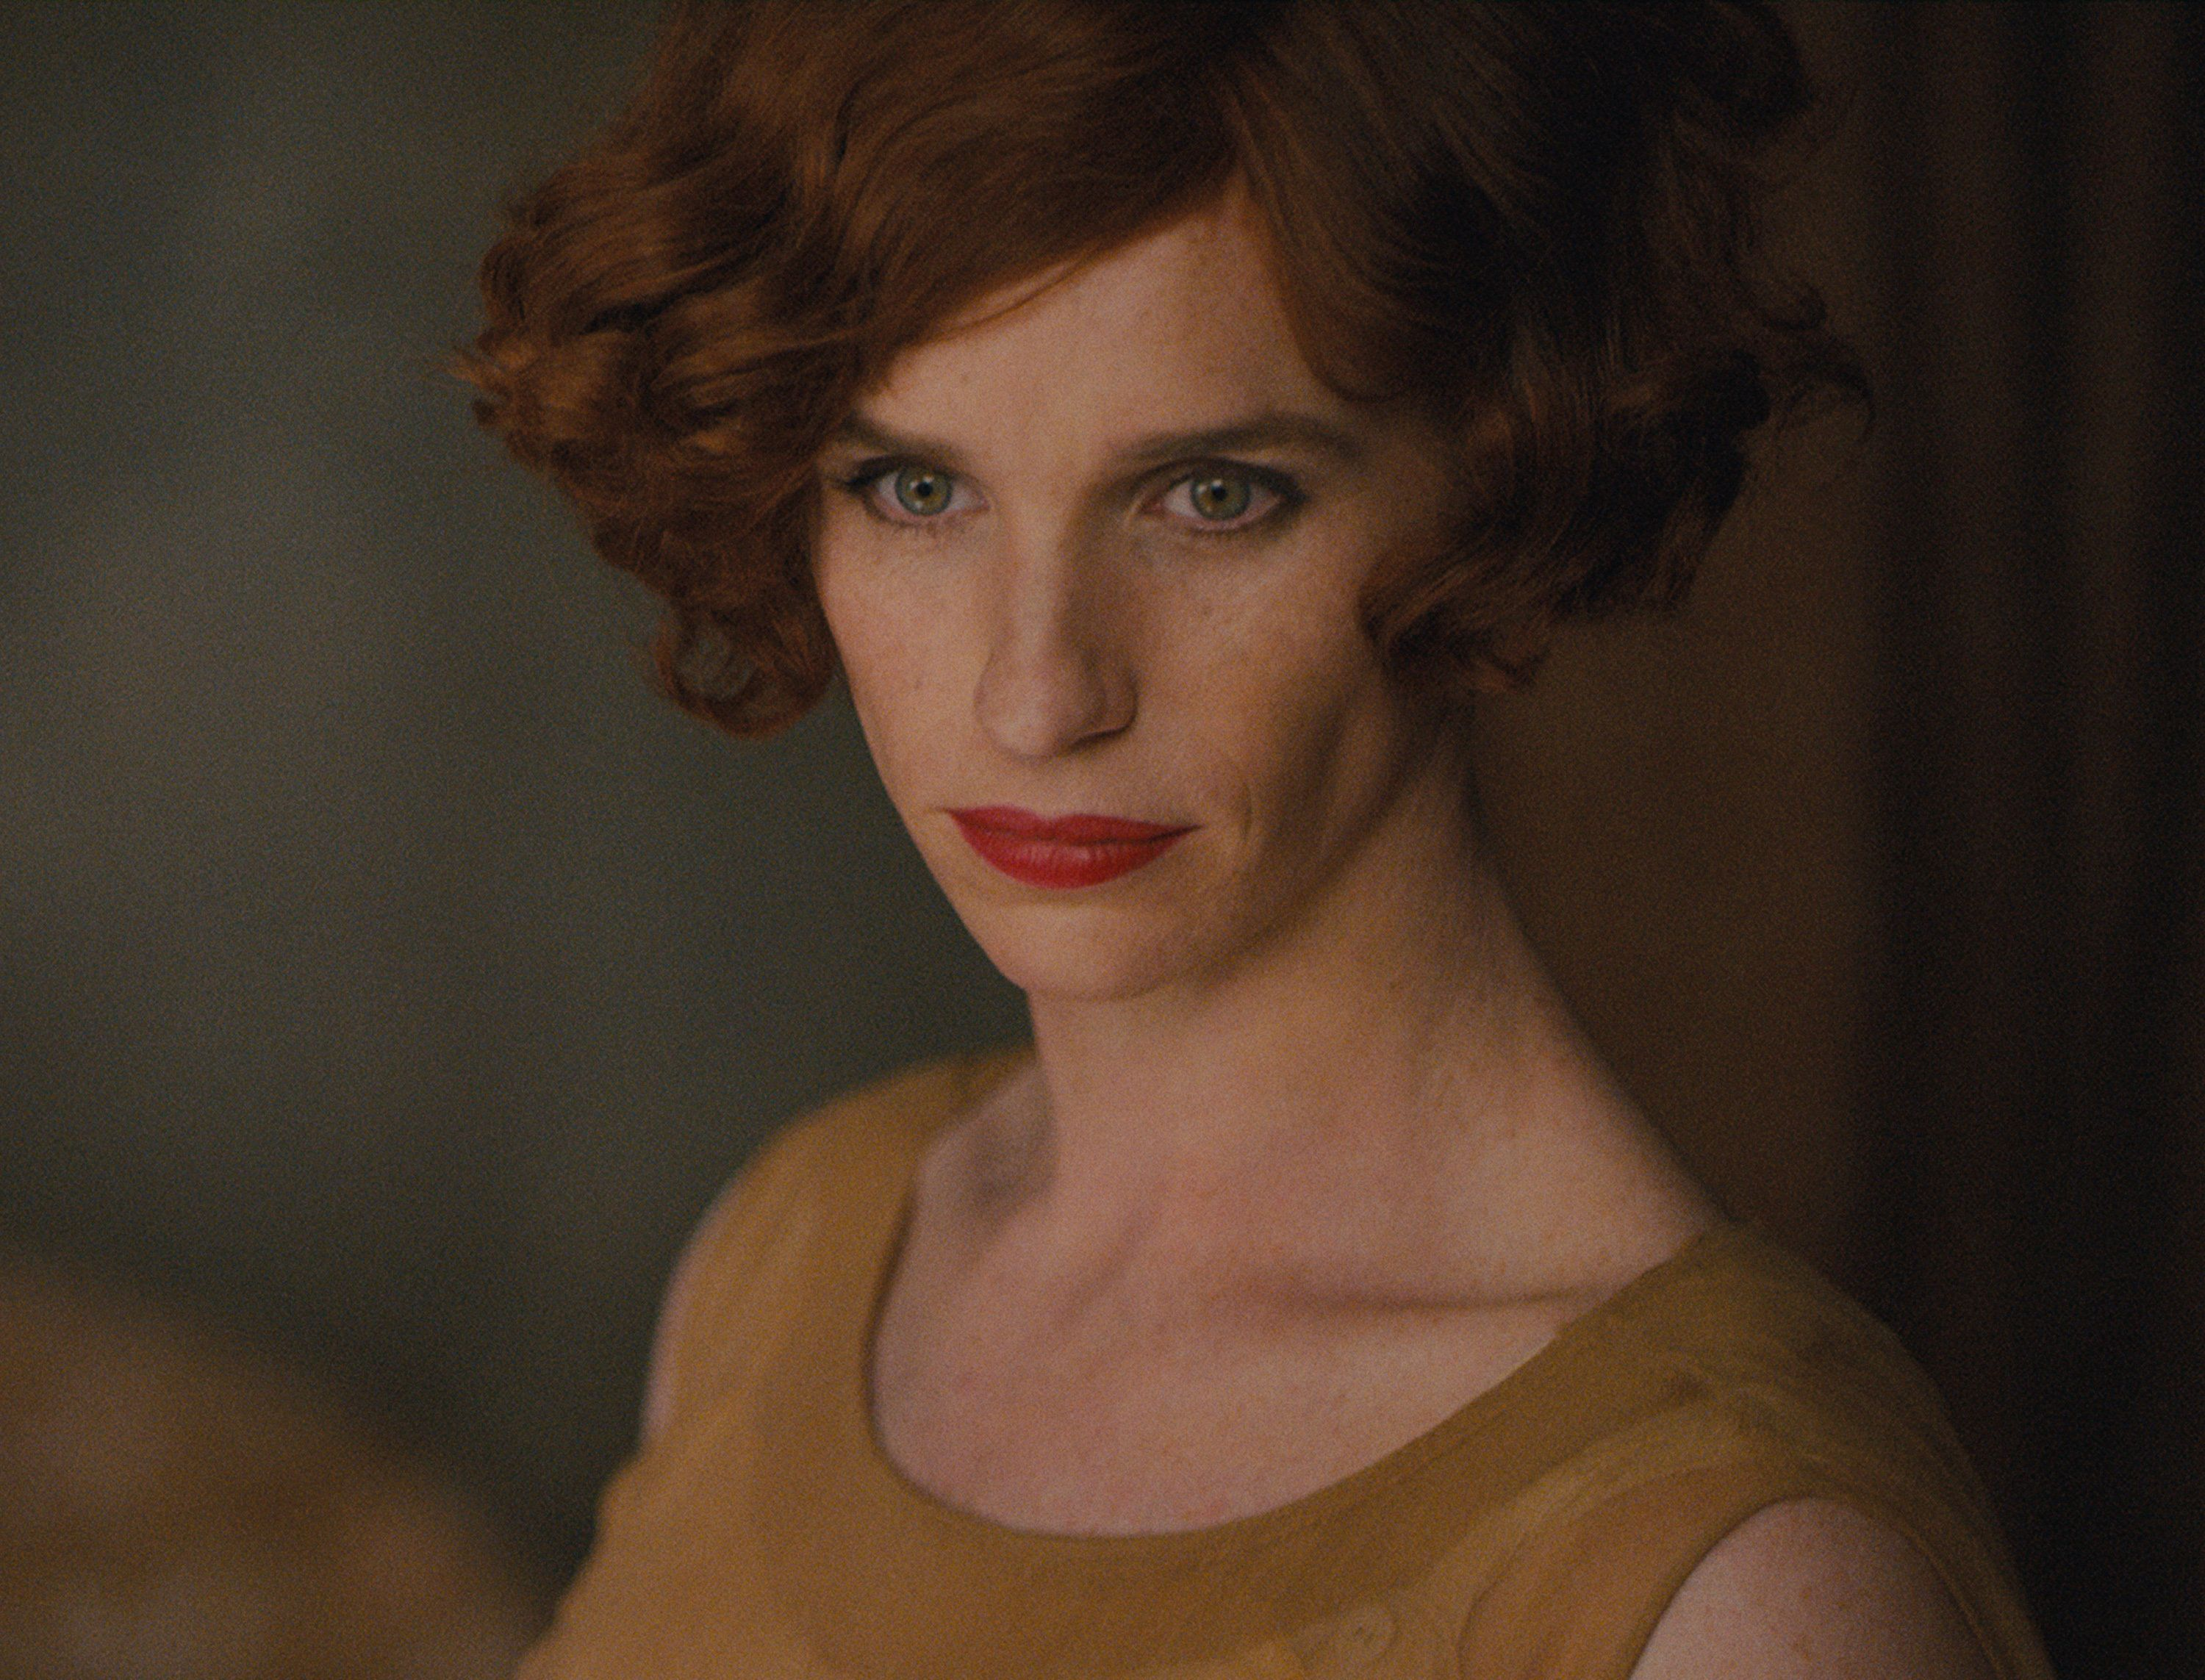 DanishGirl_1